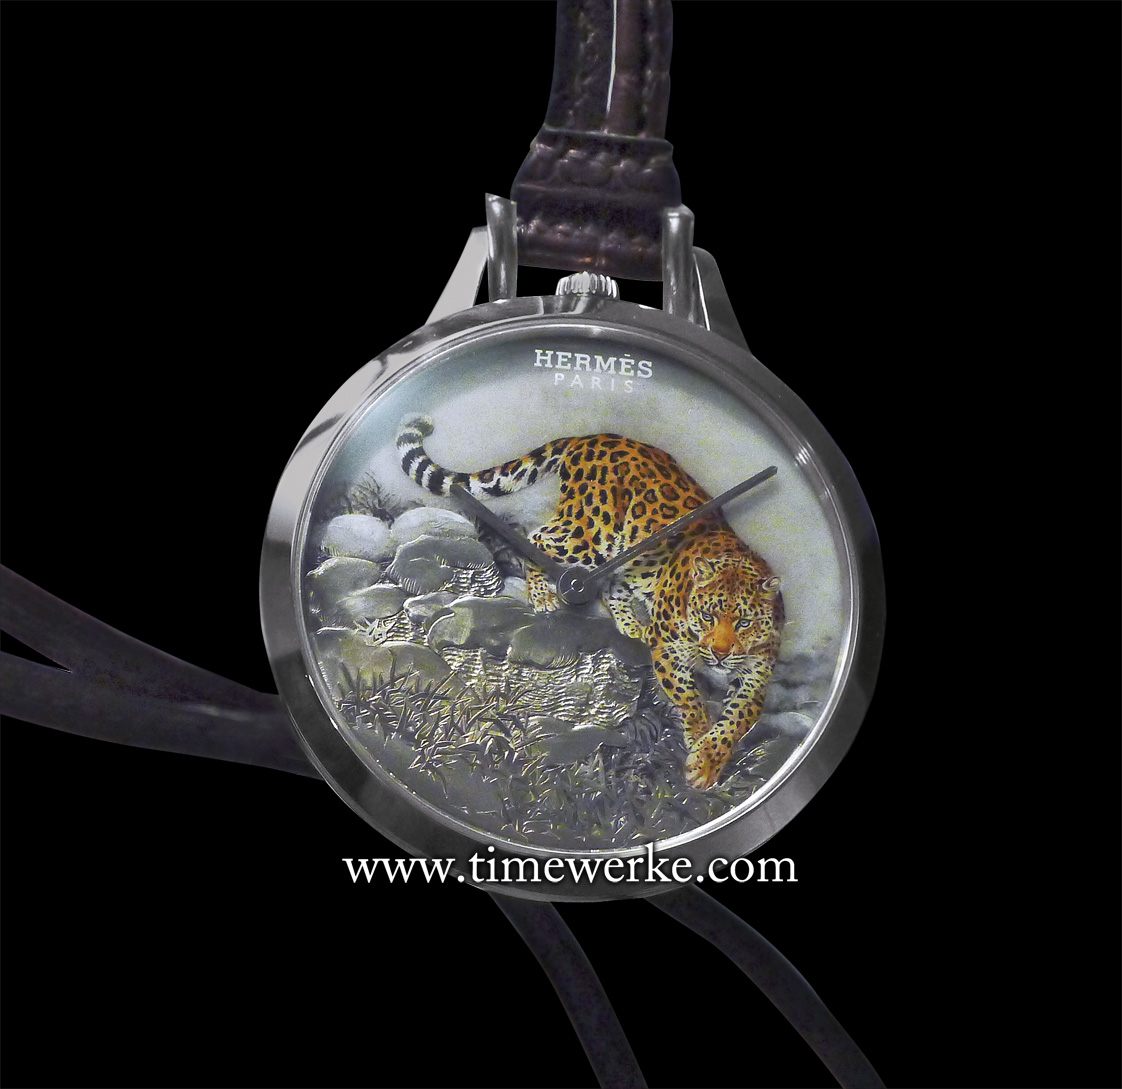 Slim d'Hermès Pocket Panthère. Introduced at the 2016 BaselWorld watch fair, this is a one-of-a-kind pocket watch featuring an engraved and enamelled white gold dial depicting a panther that is based on a painting by famed French wildlife artist Robert Dallet (1923 to 2006). Housed within its 45mm diameter white gold pocket watch case is the Hermès Manufacture Calibre H1950 automatic movement with 42 hours of power reserve. The case is water-resistant to 3 bar (30m) and comes with the pocket watch comes with a cord strap and pouch in matt havana leather. Photo: © TANG Portfolio. Elfa / Timmy. BaselWorld 2016.